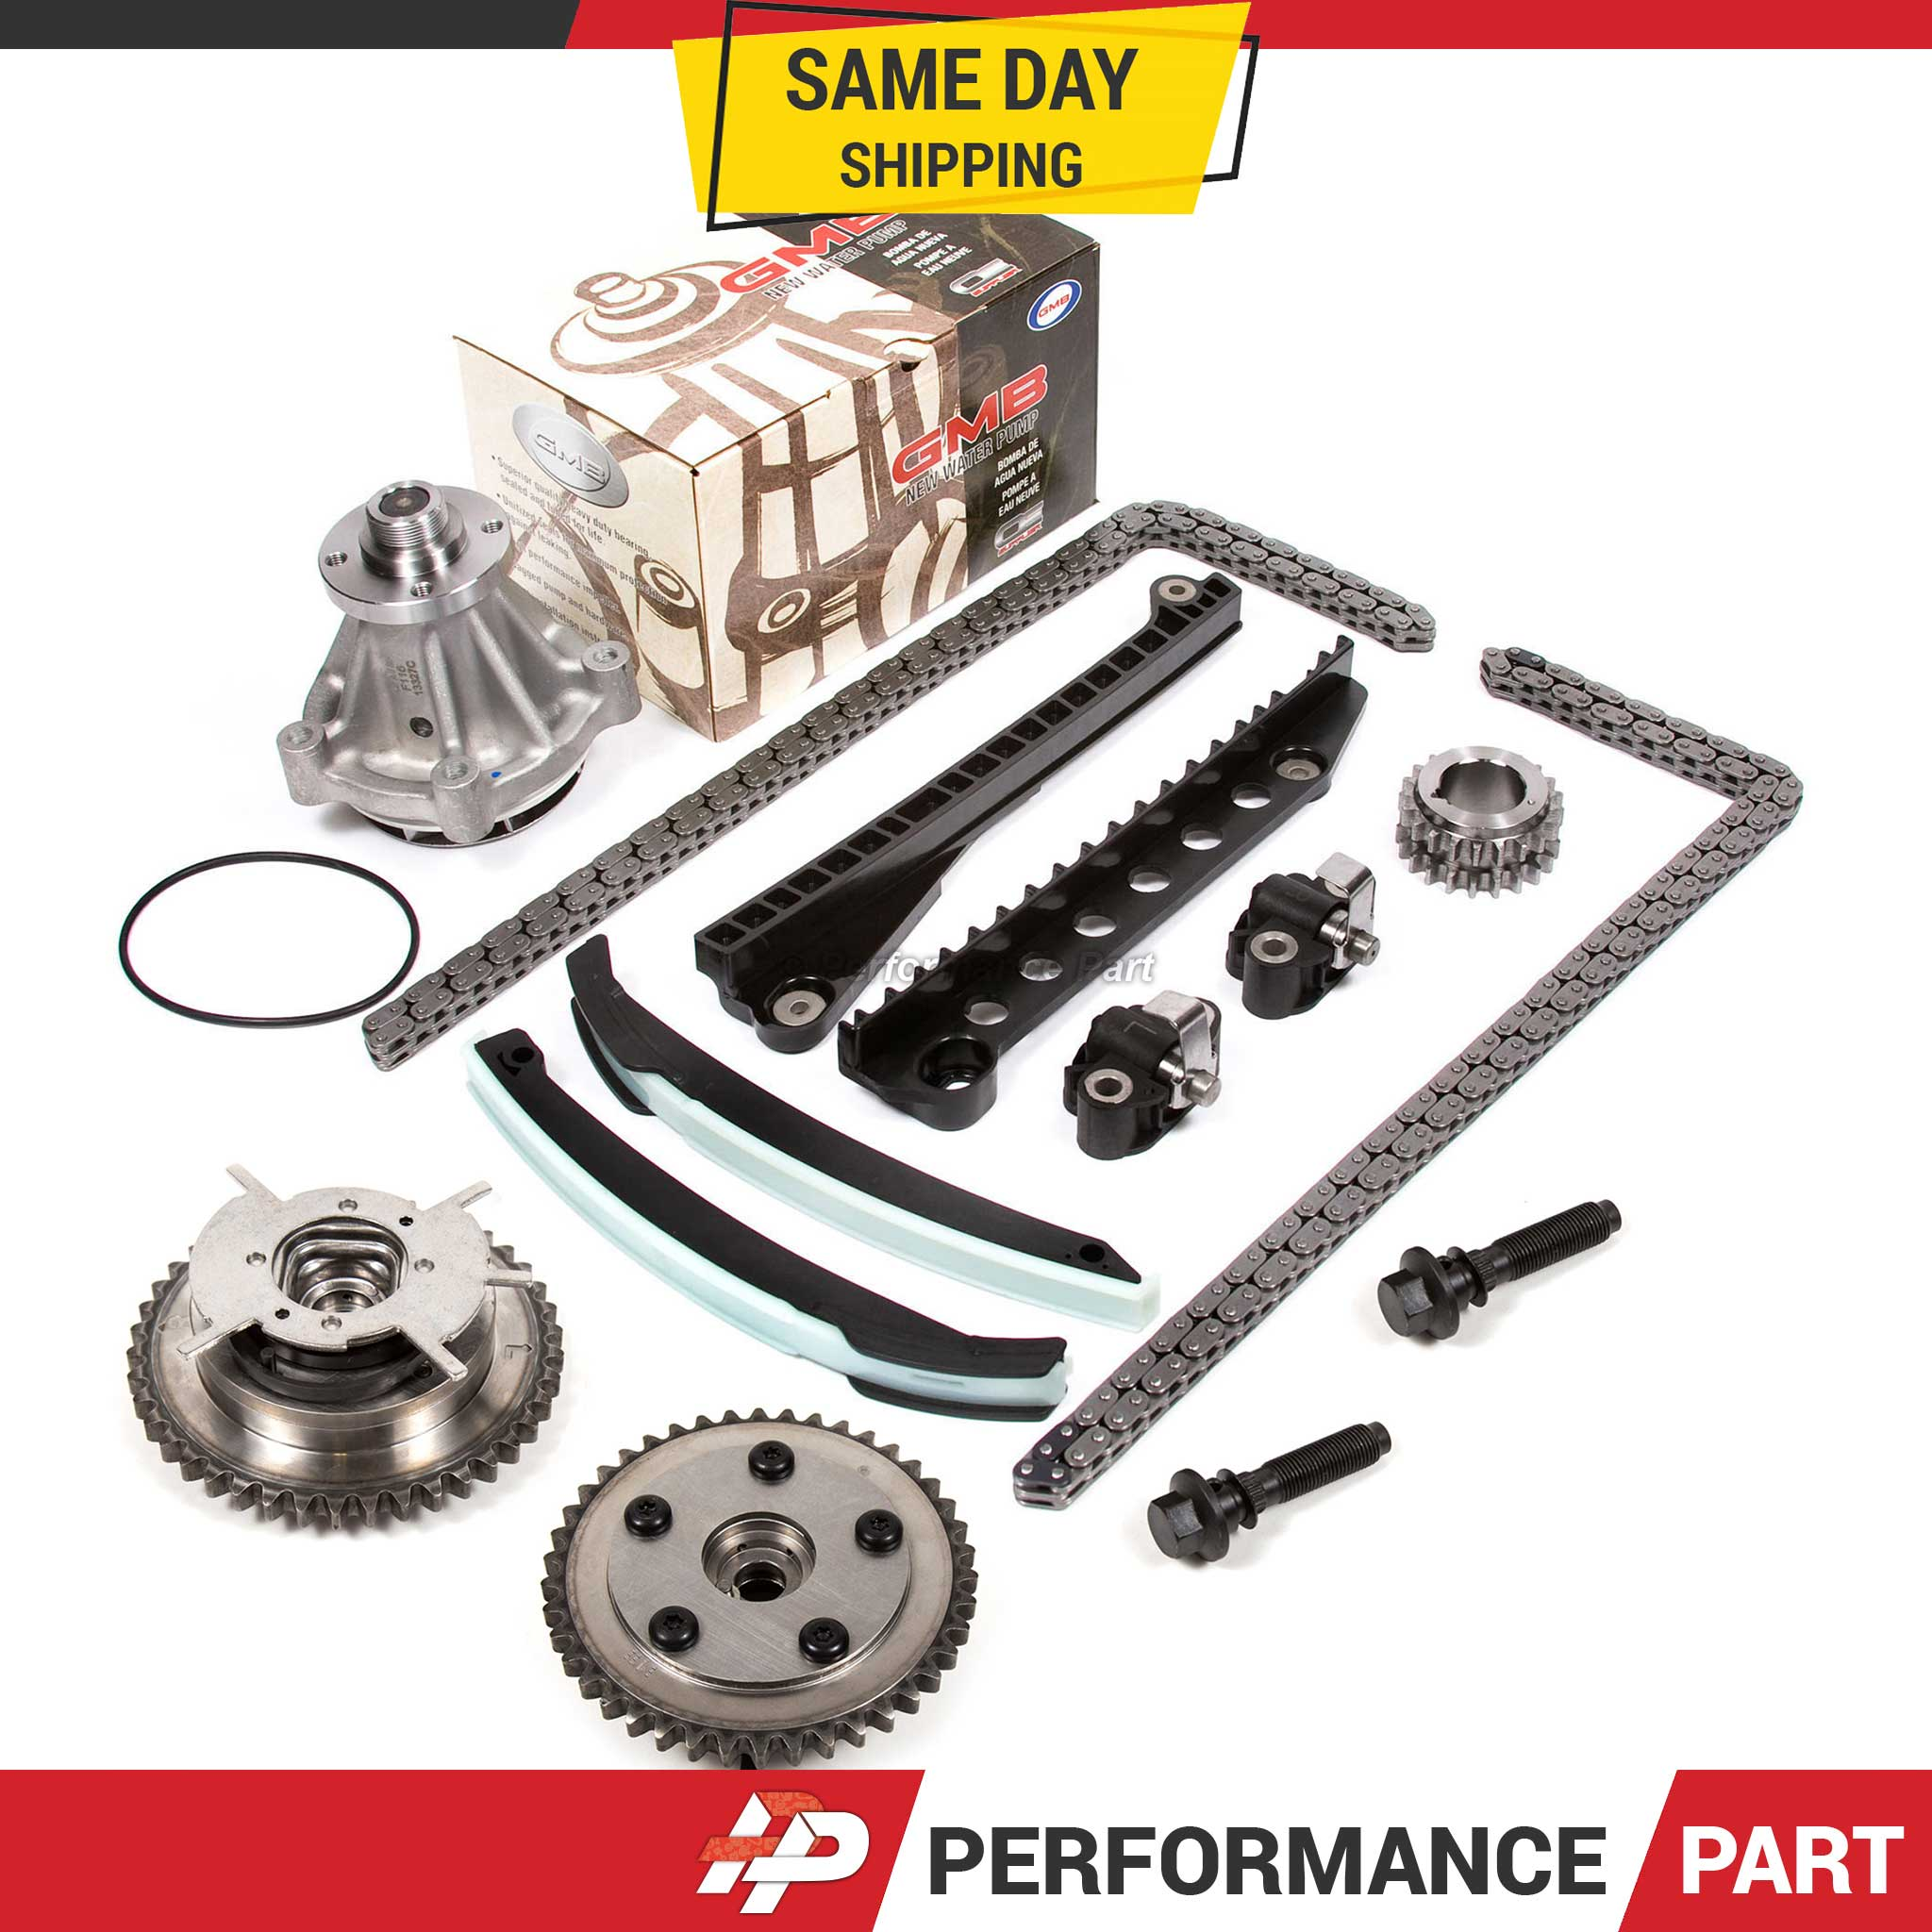 Ford 5.4L VVTi Camshaft Phaser, Timing Chain Kit, Updated